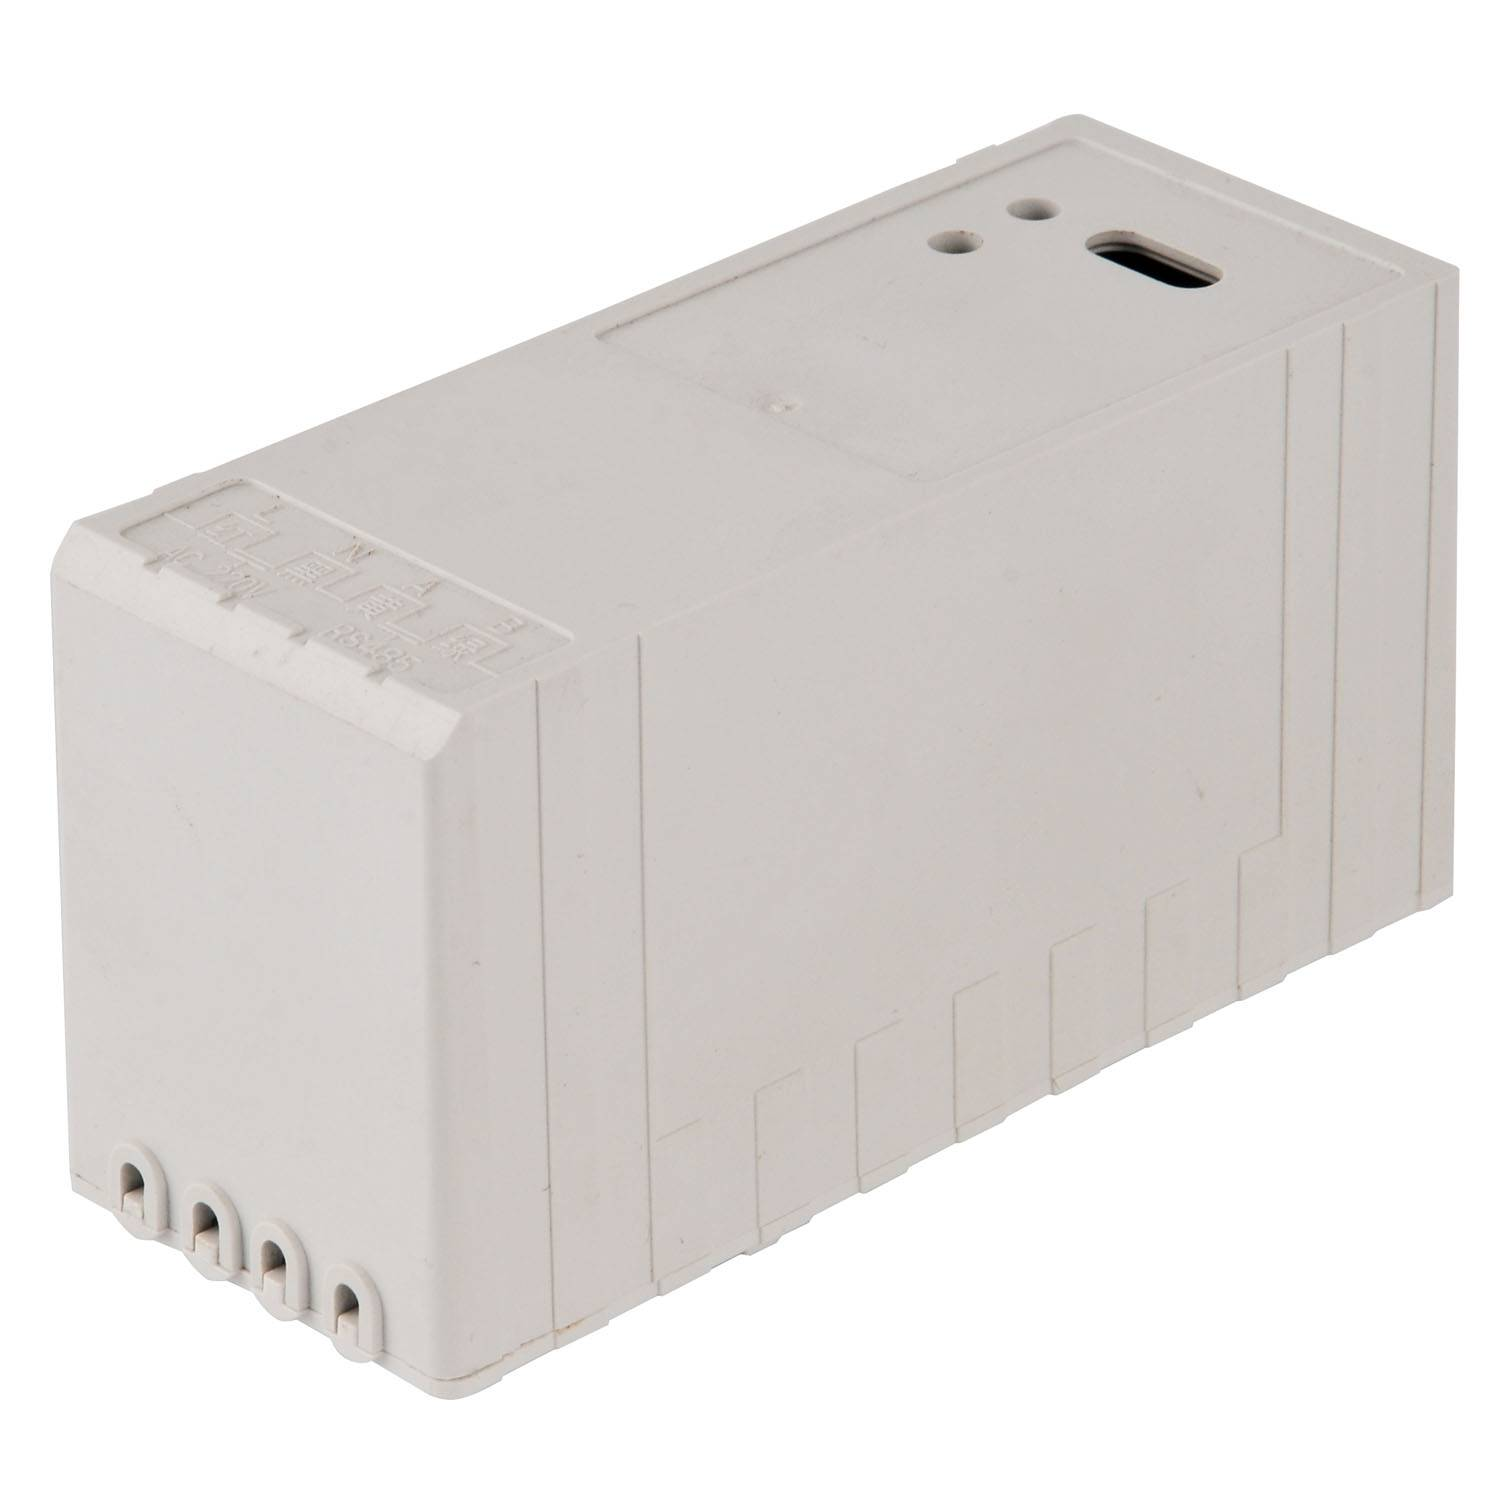 C048 high quality single phase electrical enclosures